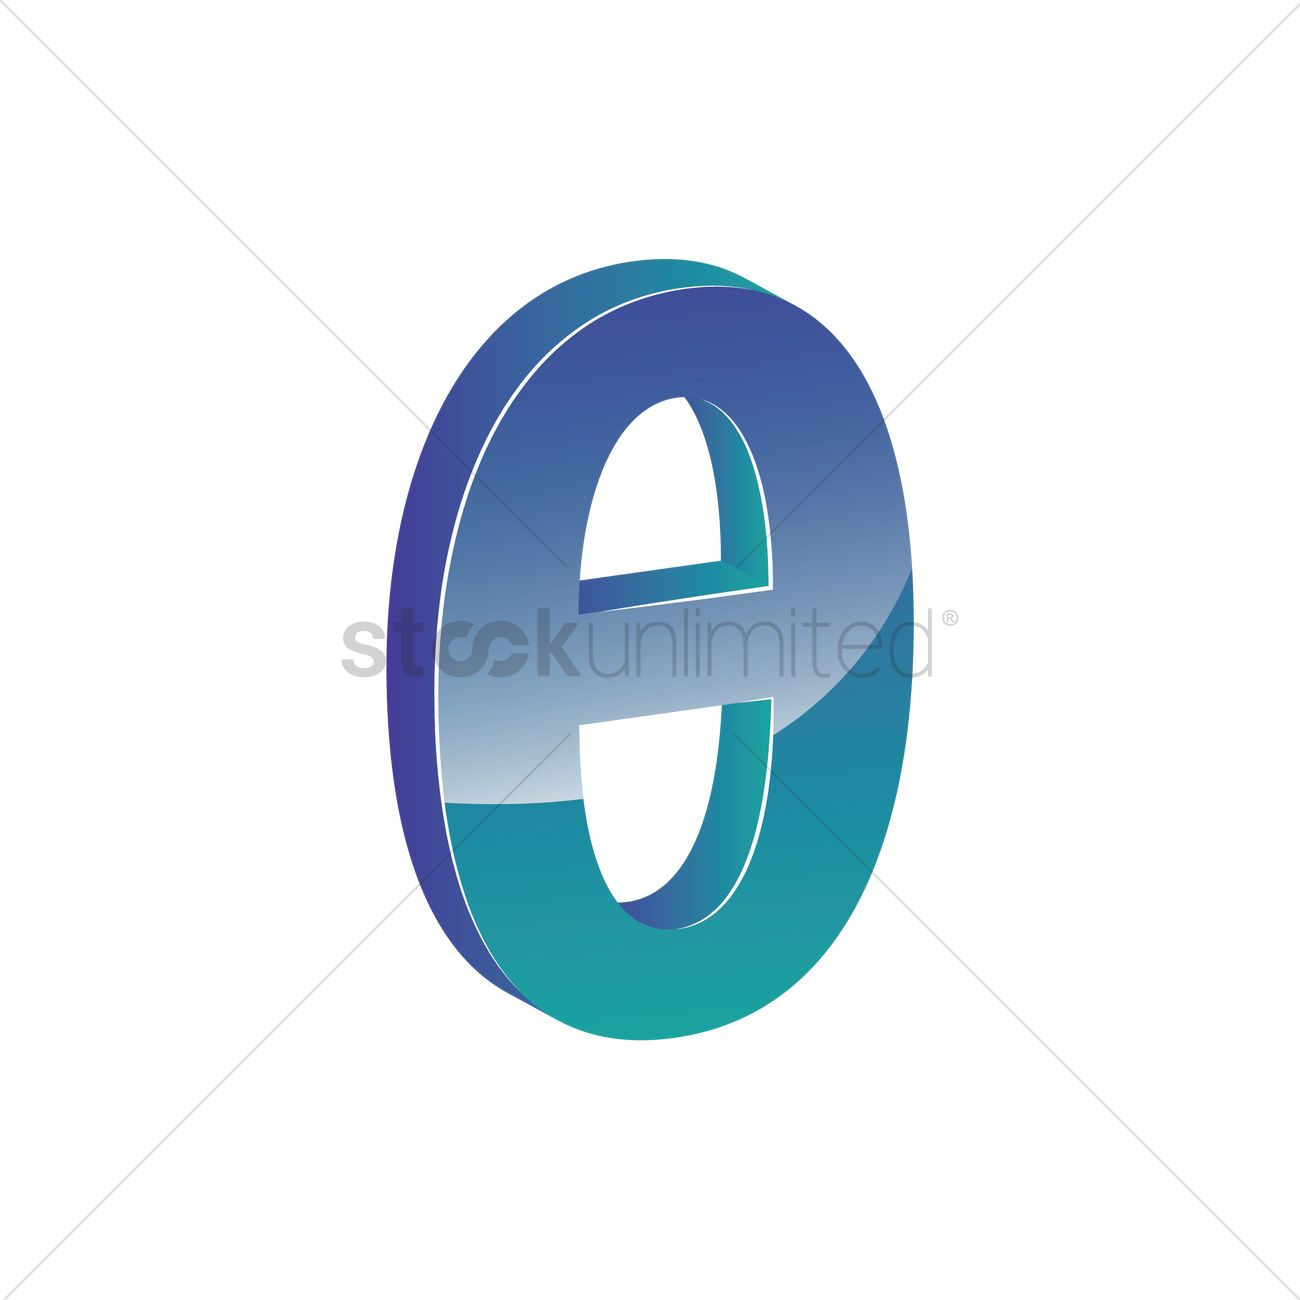 Theta Symbol Meaning Images Meaning Of Text Symbols